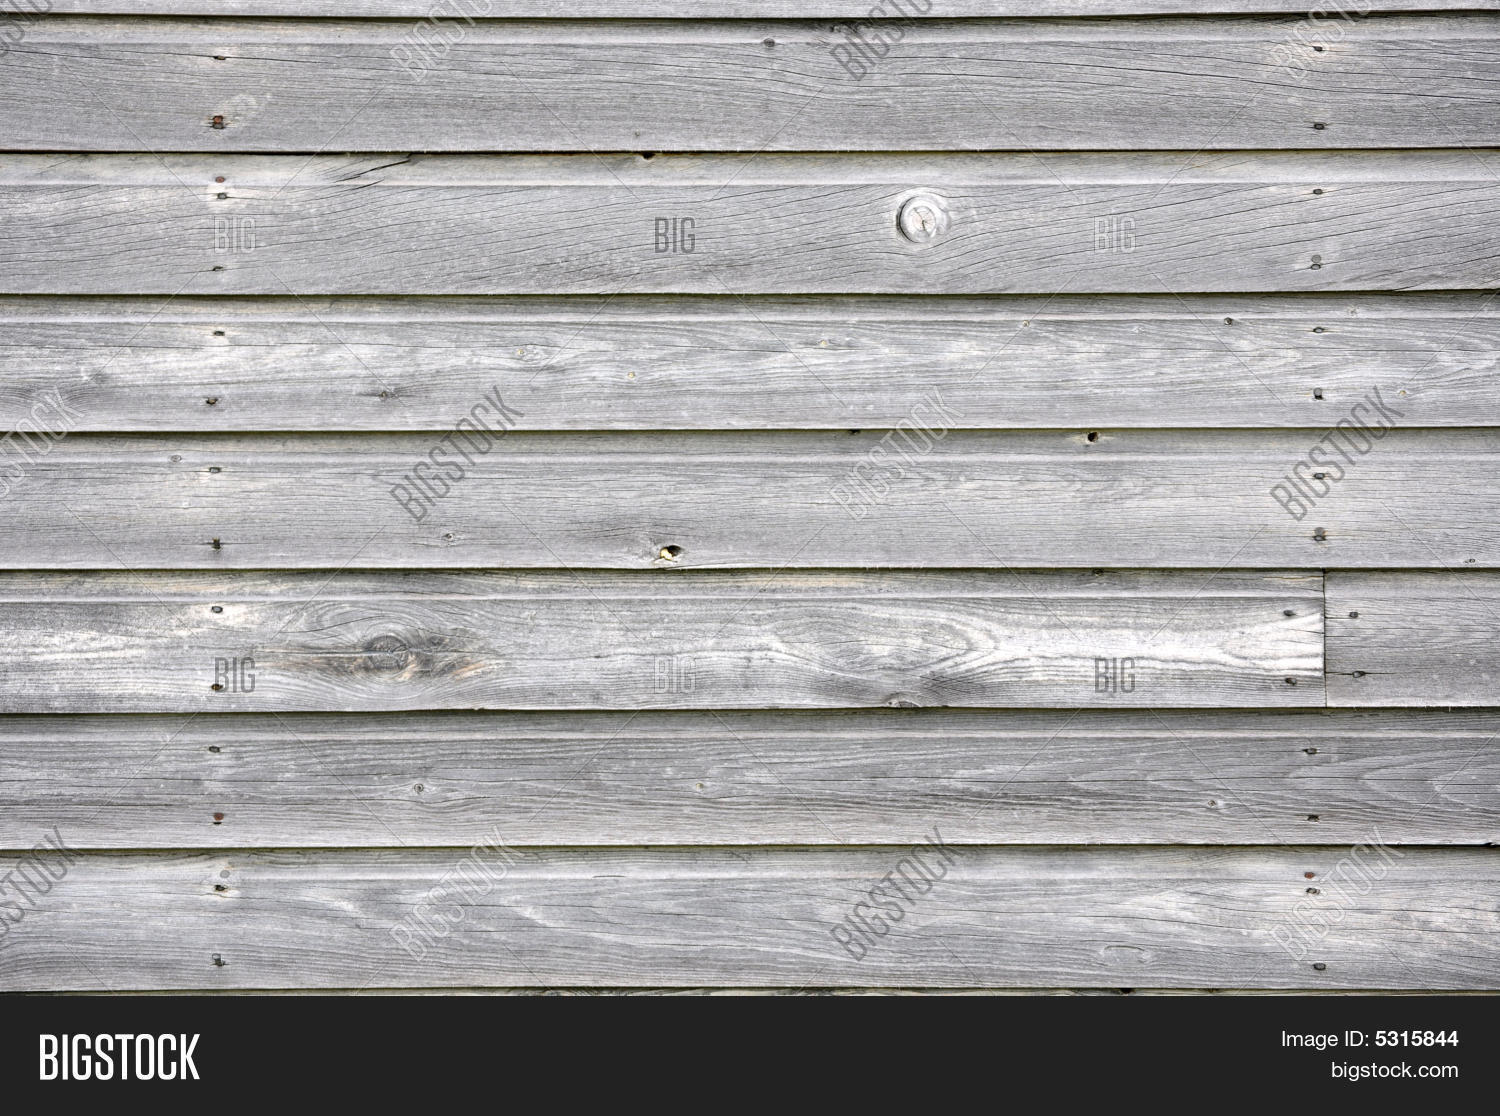 Barnwood Siding Prices Weathered Wood Siding Stock Photo Stock Images Bigstock